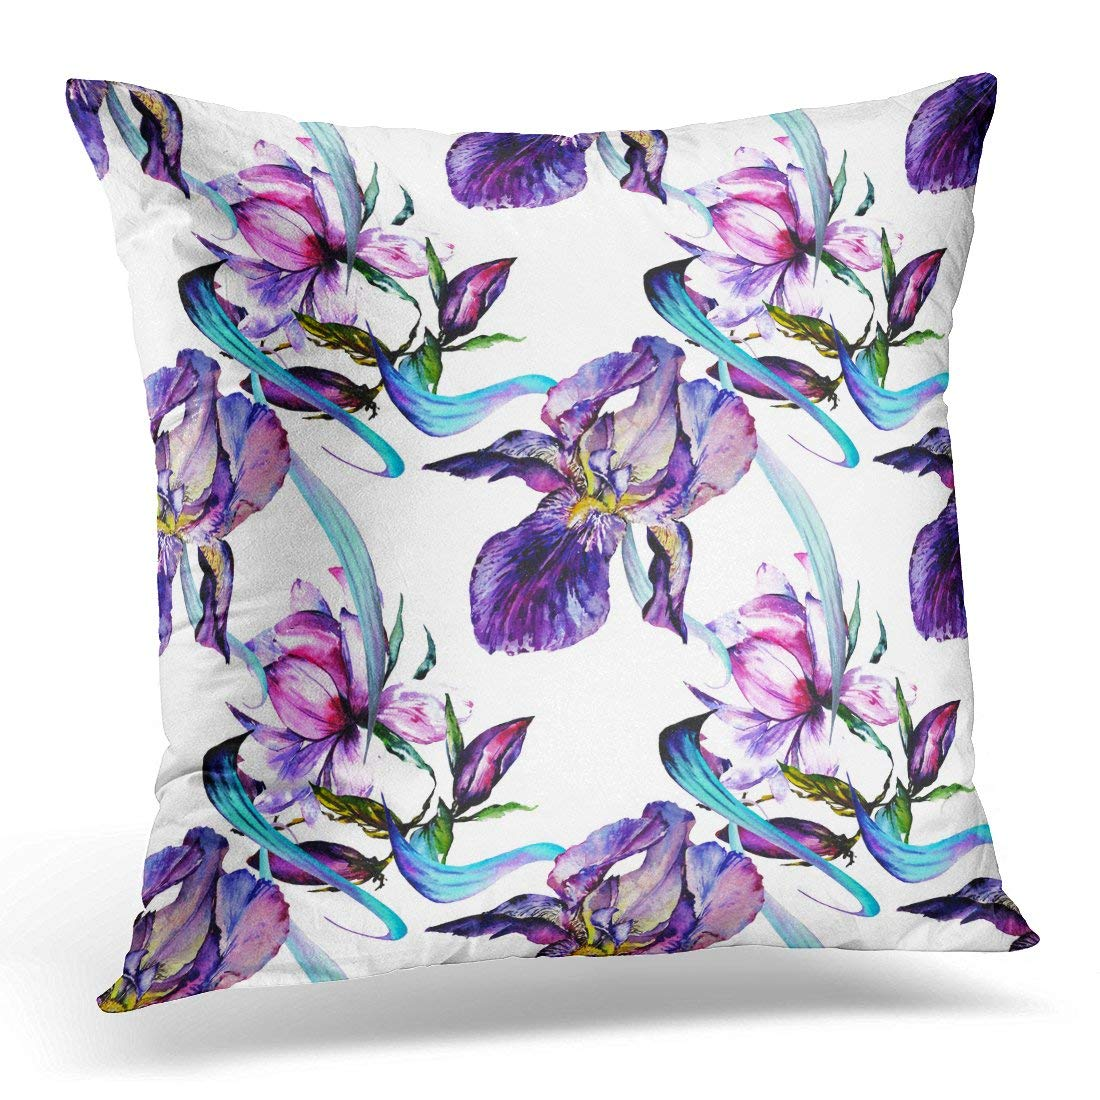 ARHOME Watercolor Exotic Tropical Wildwlower Beautiful Colorful Magic Pink Rose Peony Magnolia and Violet Throw Pillow Case Pillow Cover Sofa Home Decor 16x16 Inches